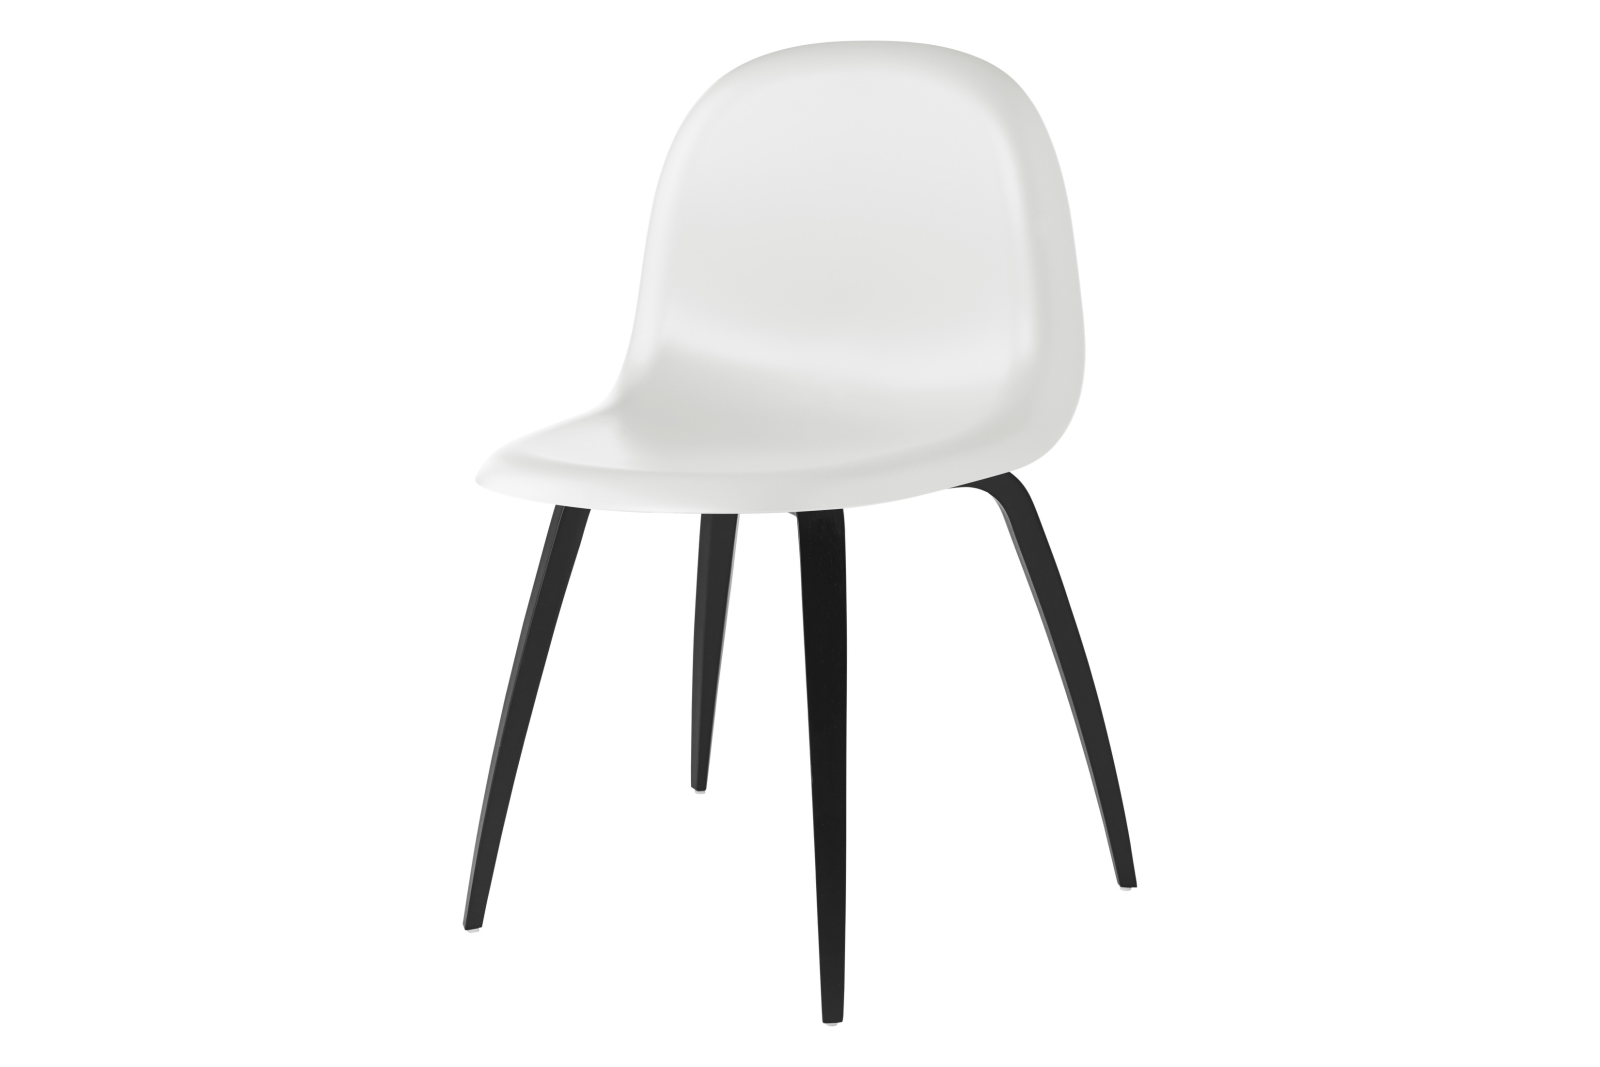 Gubi 3D Wood Base Dining Chair - Unupholstered Gubi HiRek White Cloud, Gubi Wood Black Stained Beech